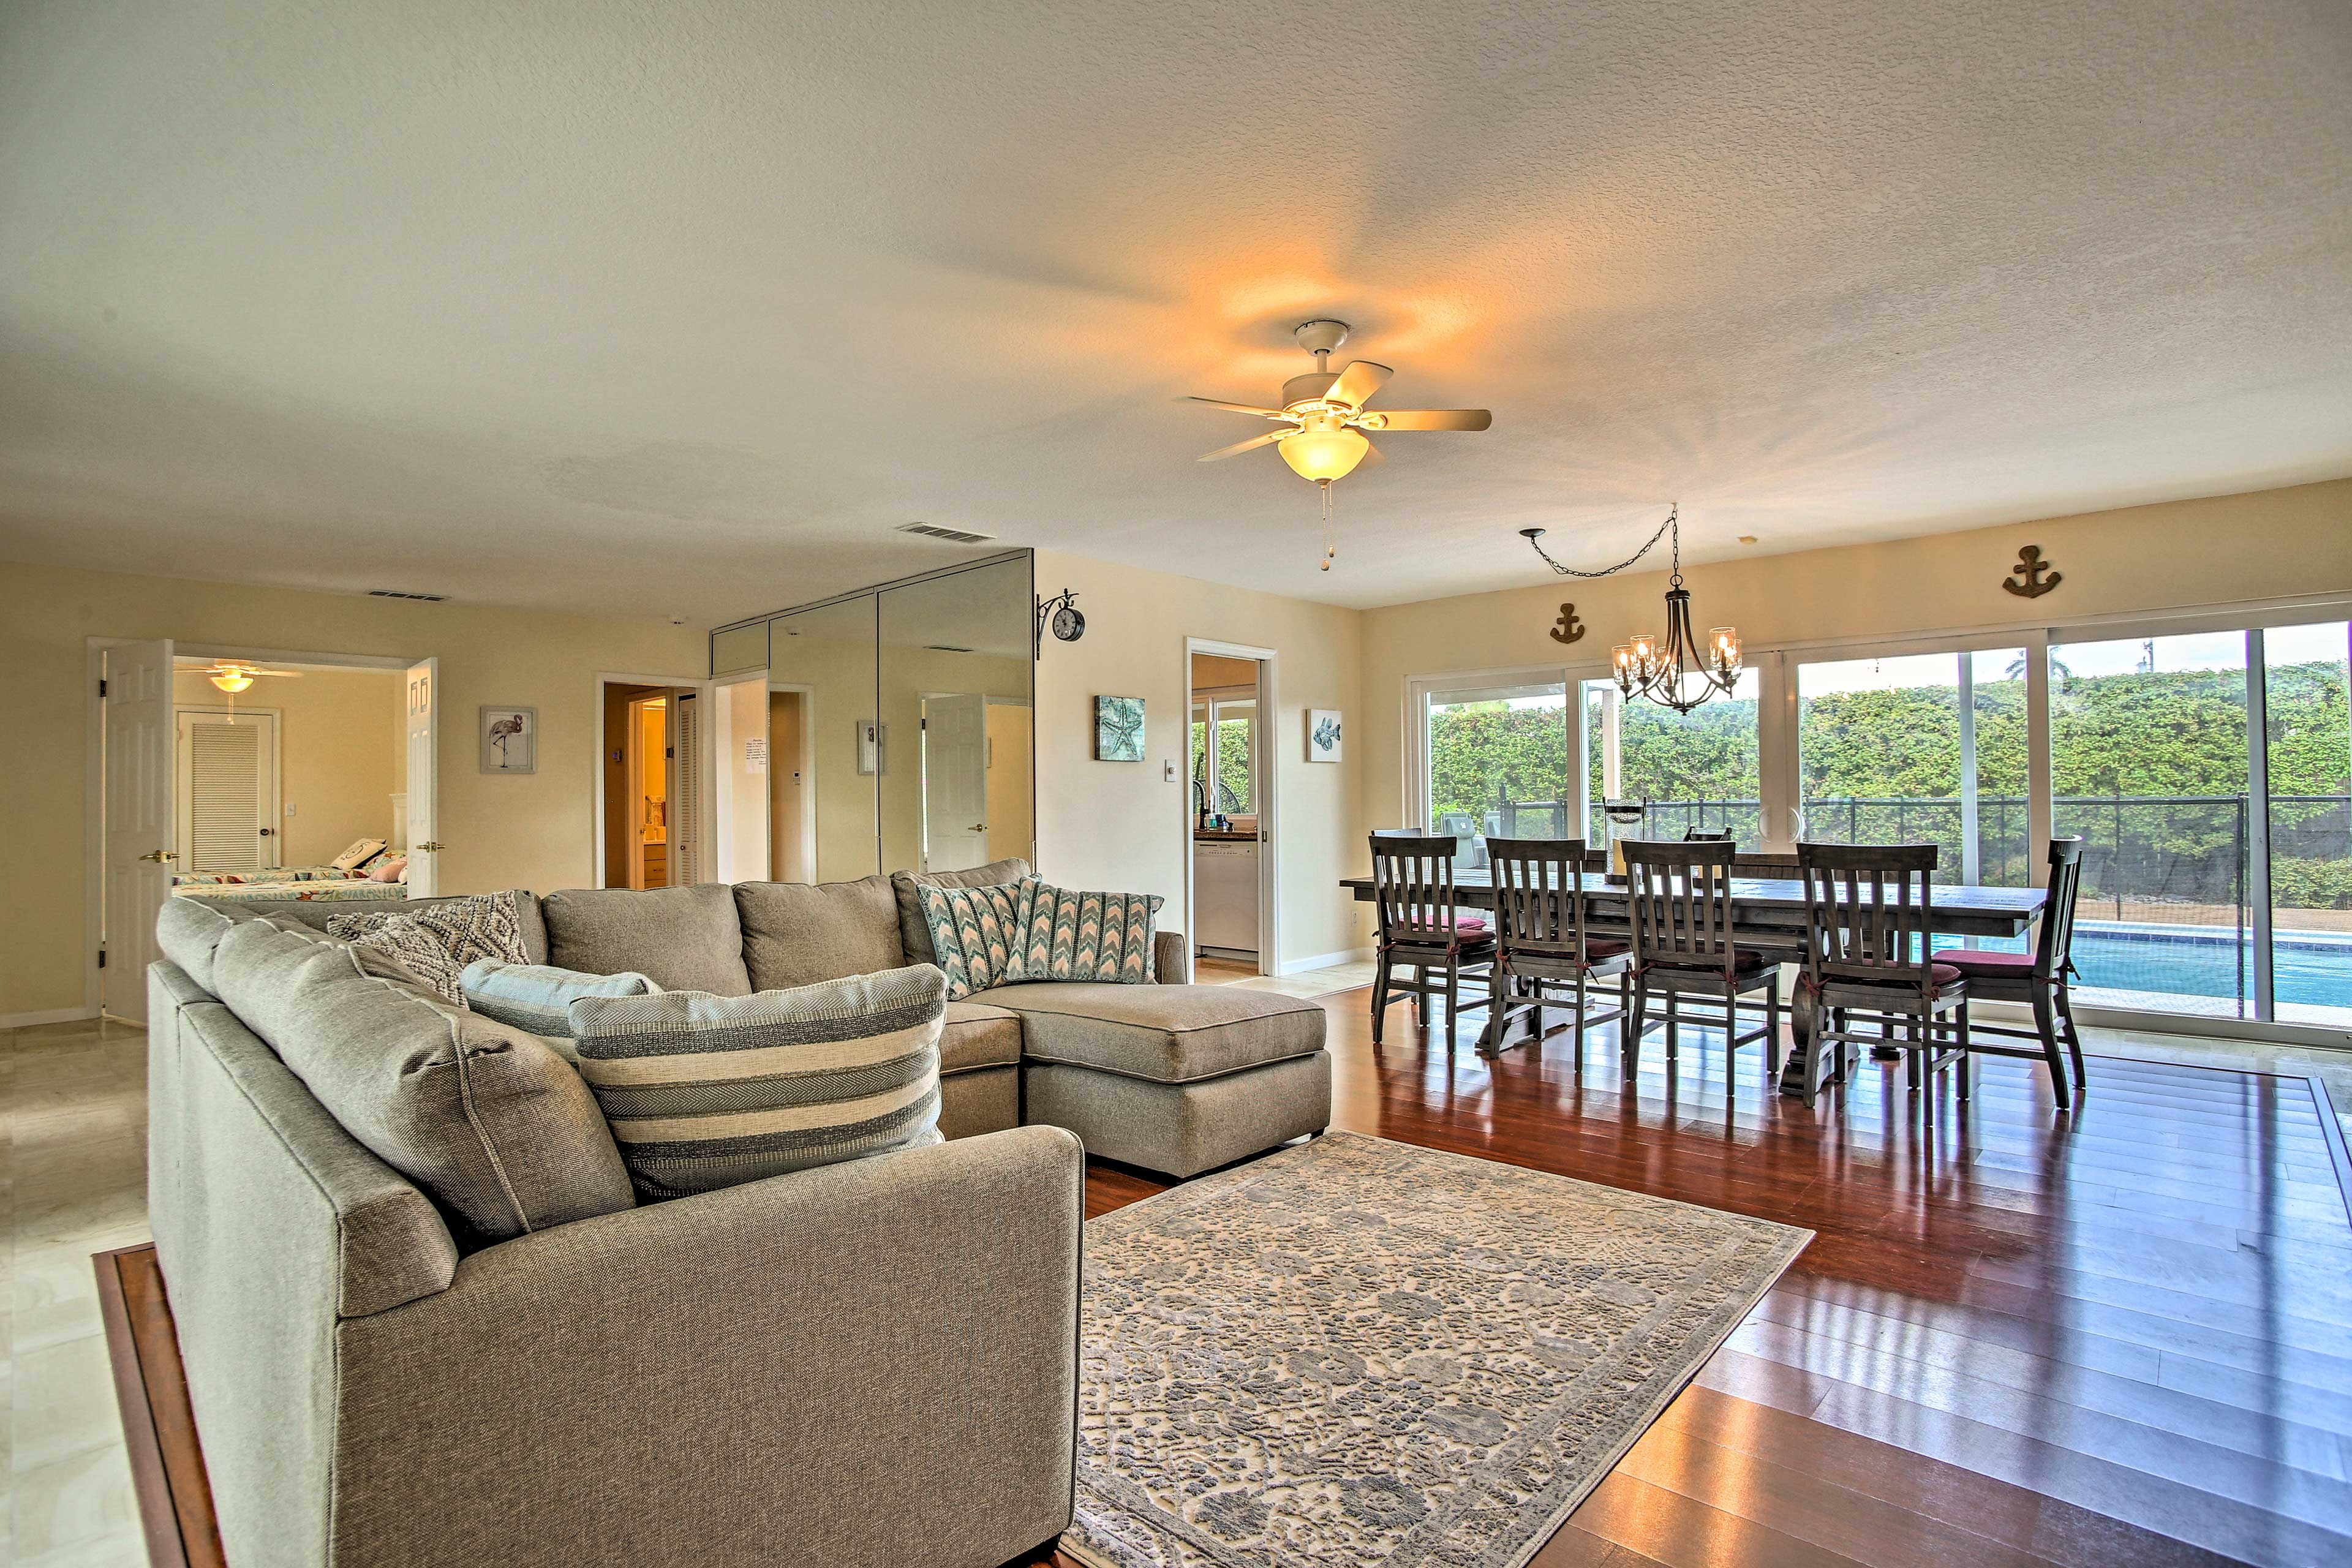 There are 3 bedrooms, 2 bathrooms, a full-sized sleeper sofa & room to sleep 10!